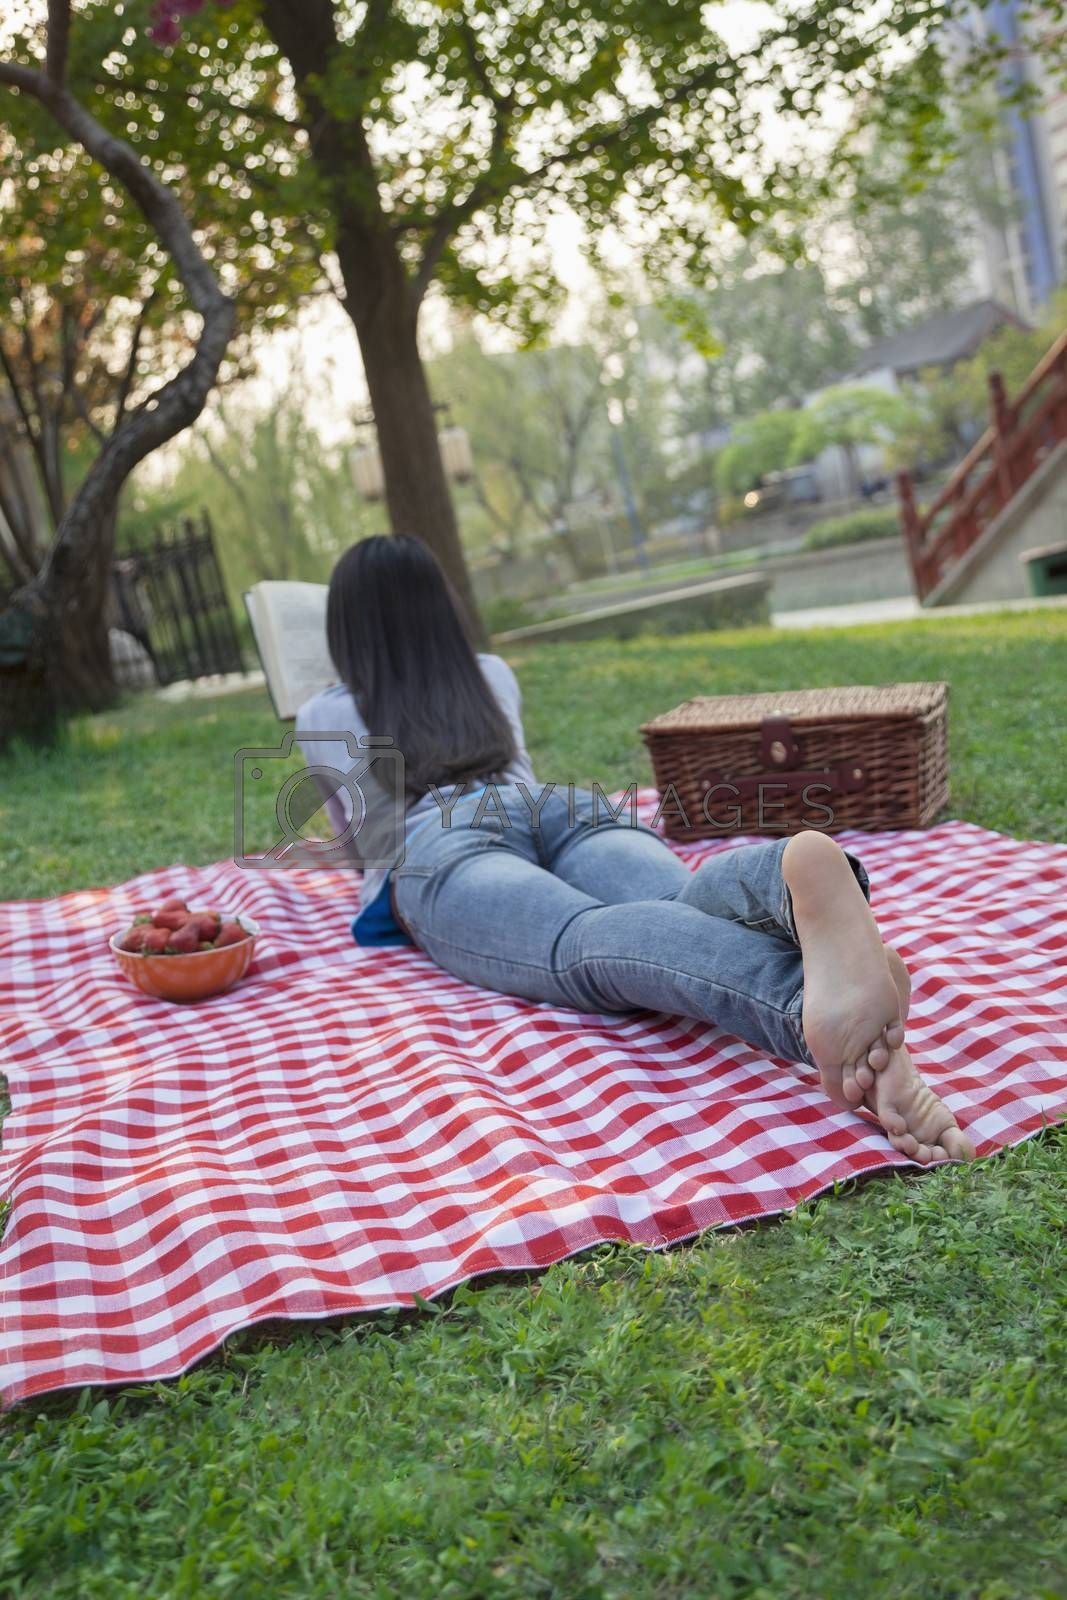 Young woman lying on her stomach on a checkered blanket and reading in the park, having a picnic by XiXinXing